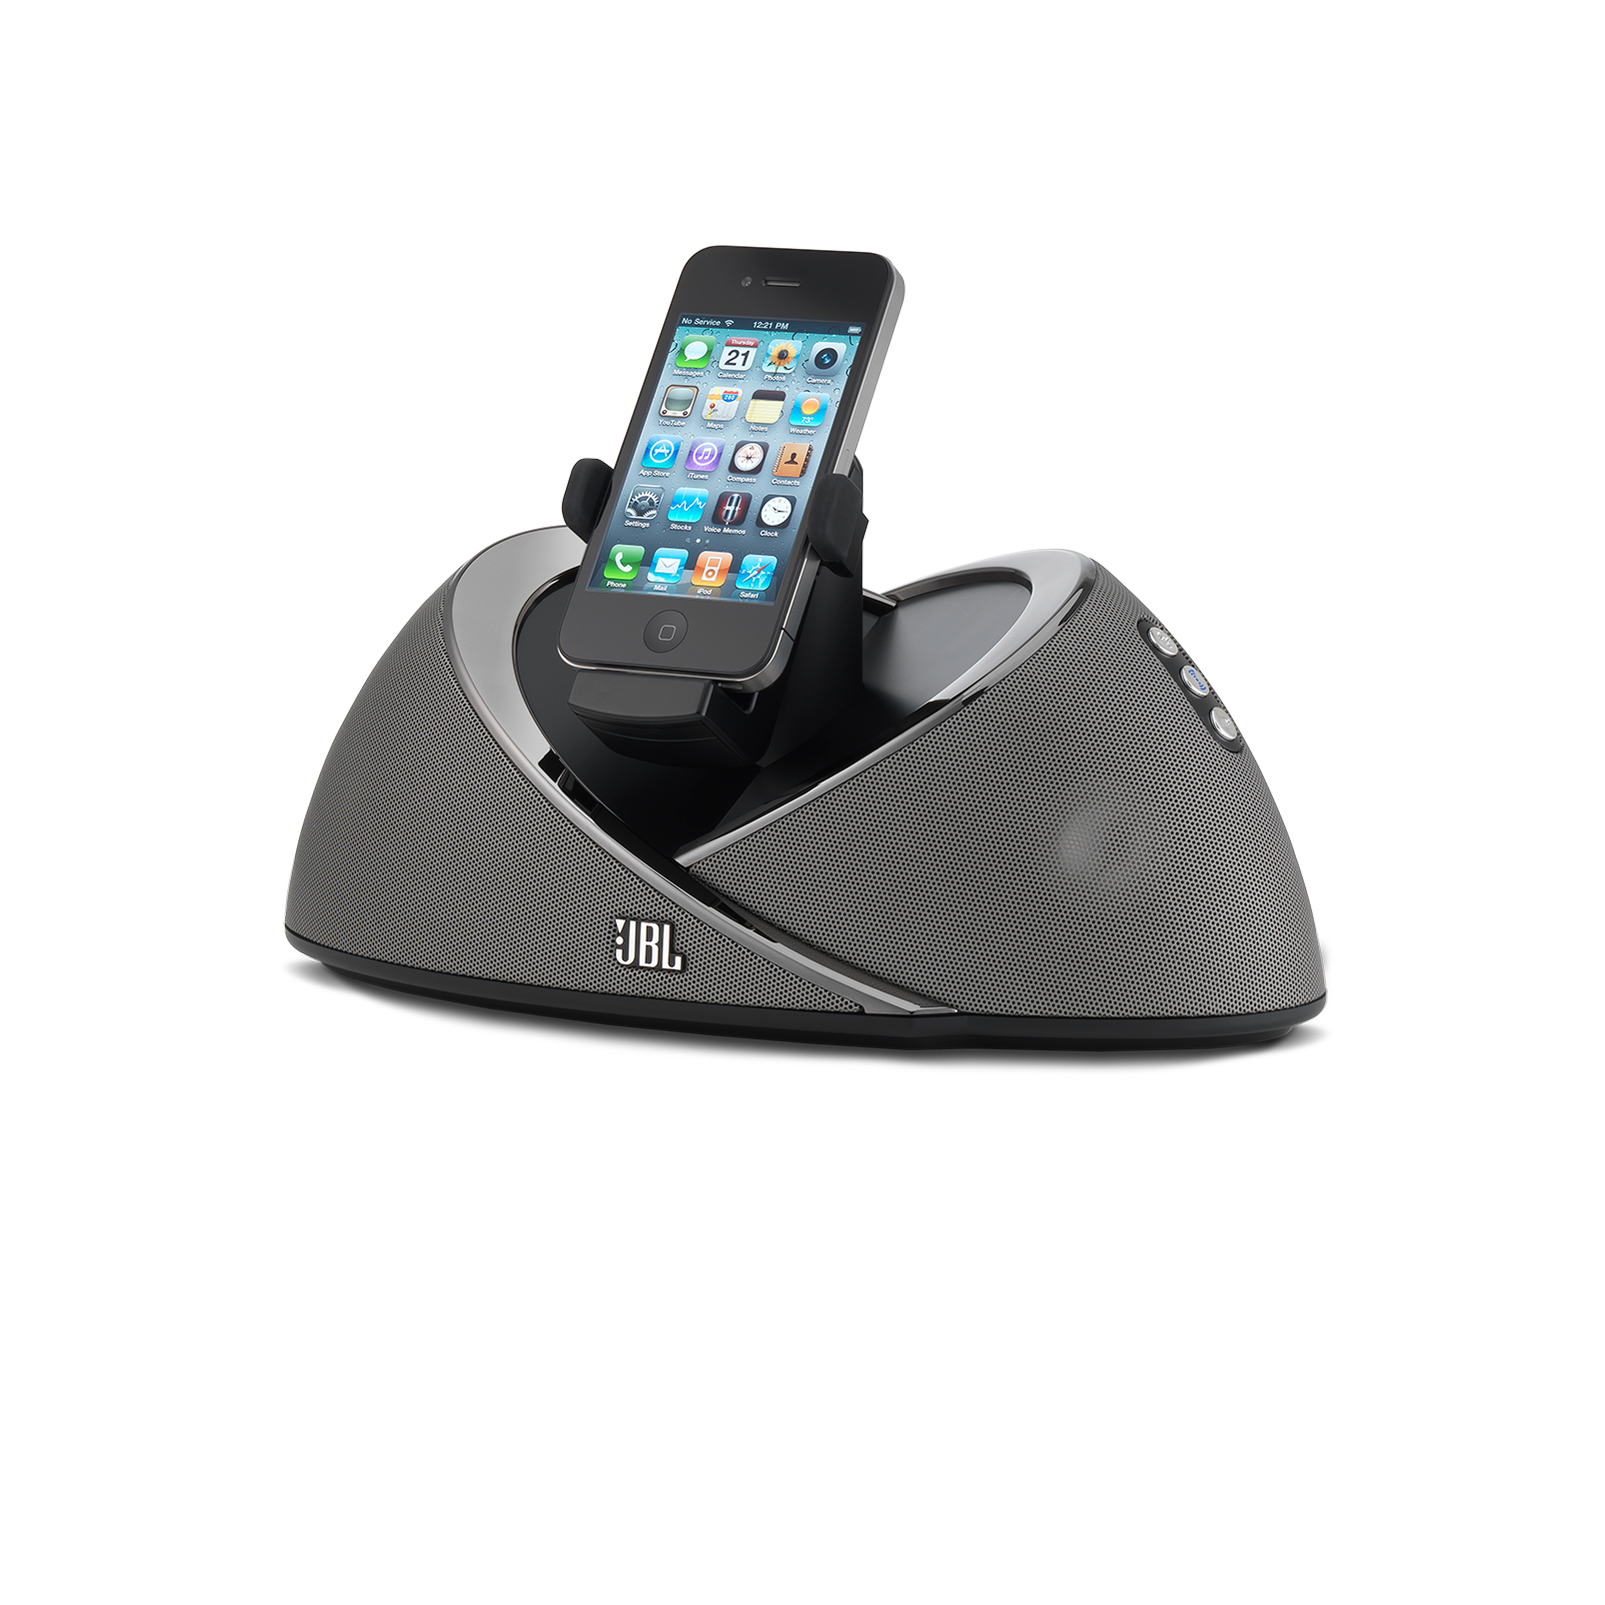 JBL OnBeat Air - Black-Z - High-performance AirPlay wireless loudspeaker docking station for iOS devices - Hero